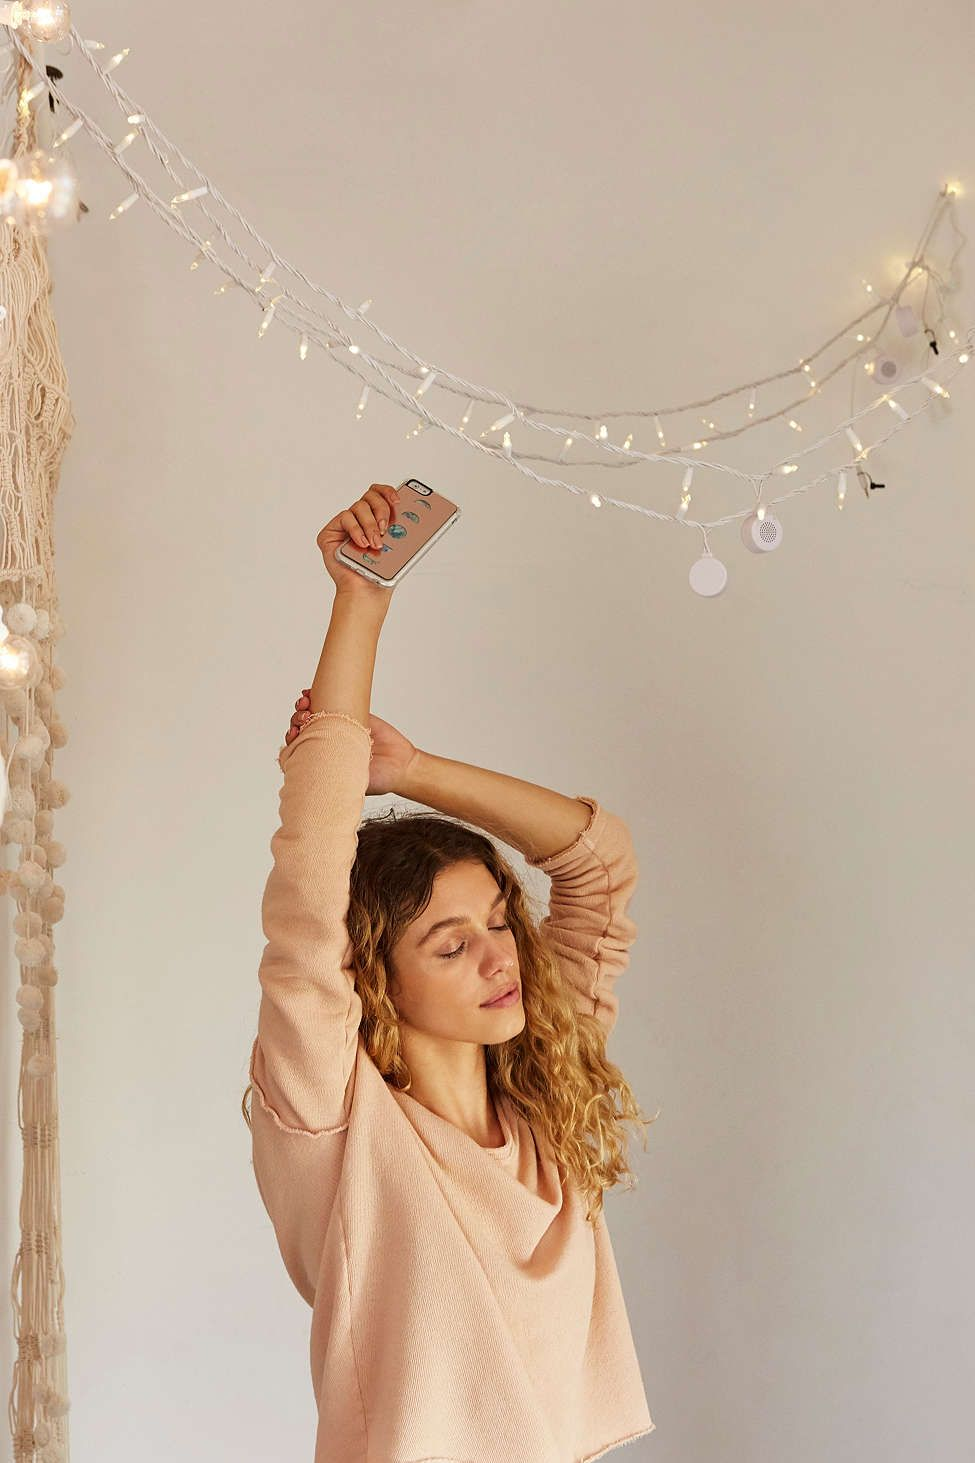 Bluetooth Speaker String Lights Bluetooth Speaker String Lights  Urban Outfitters  Apartments And